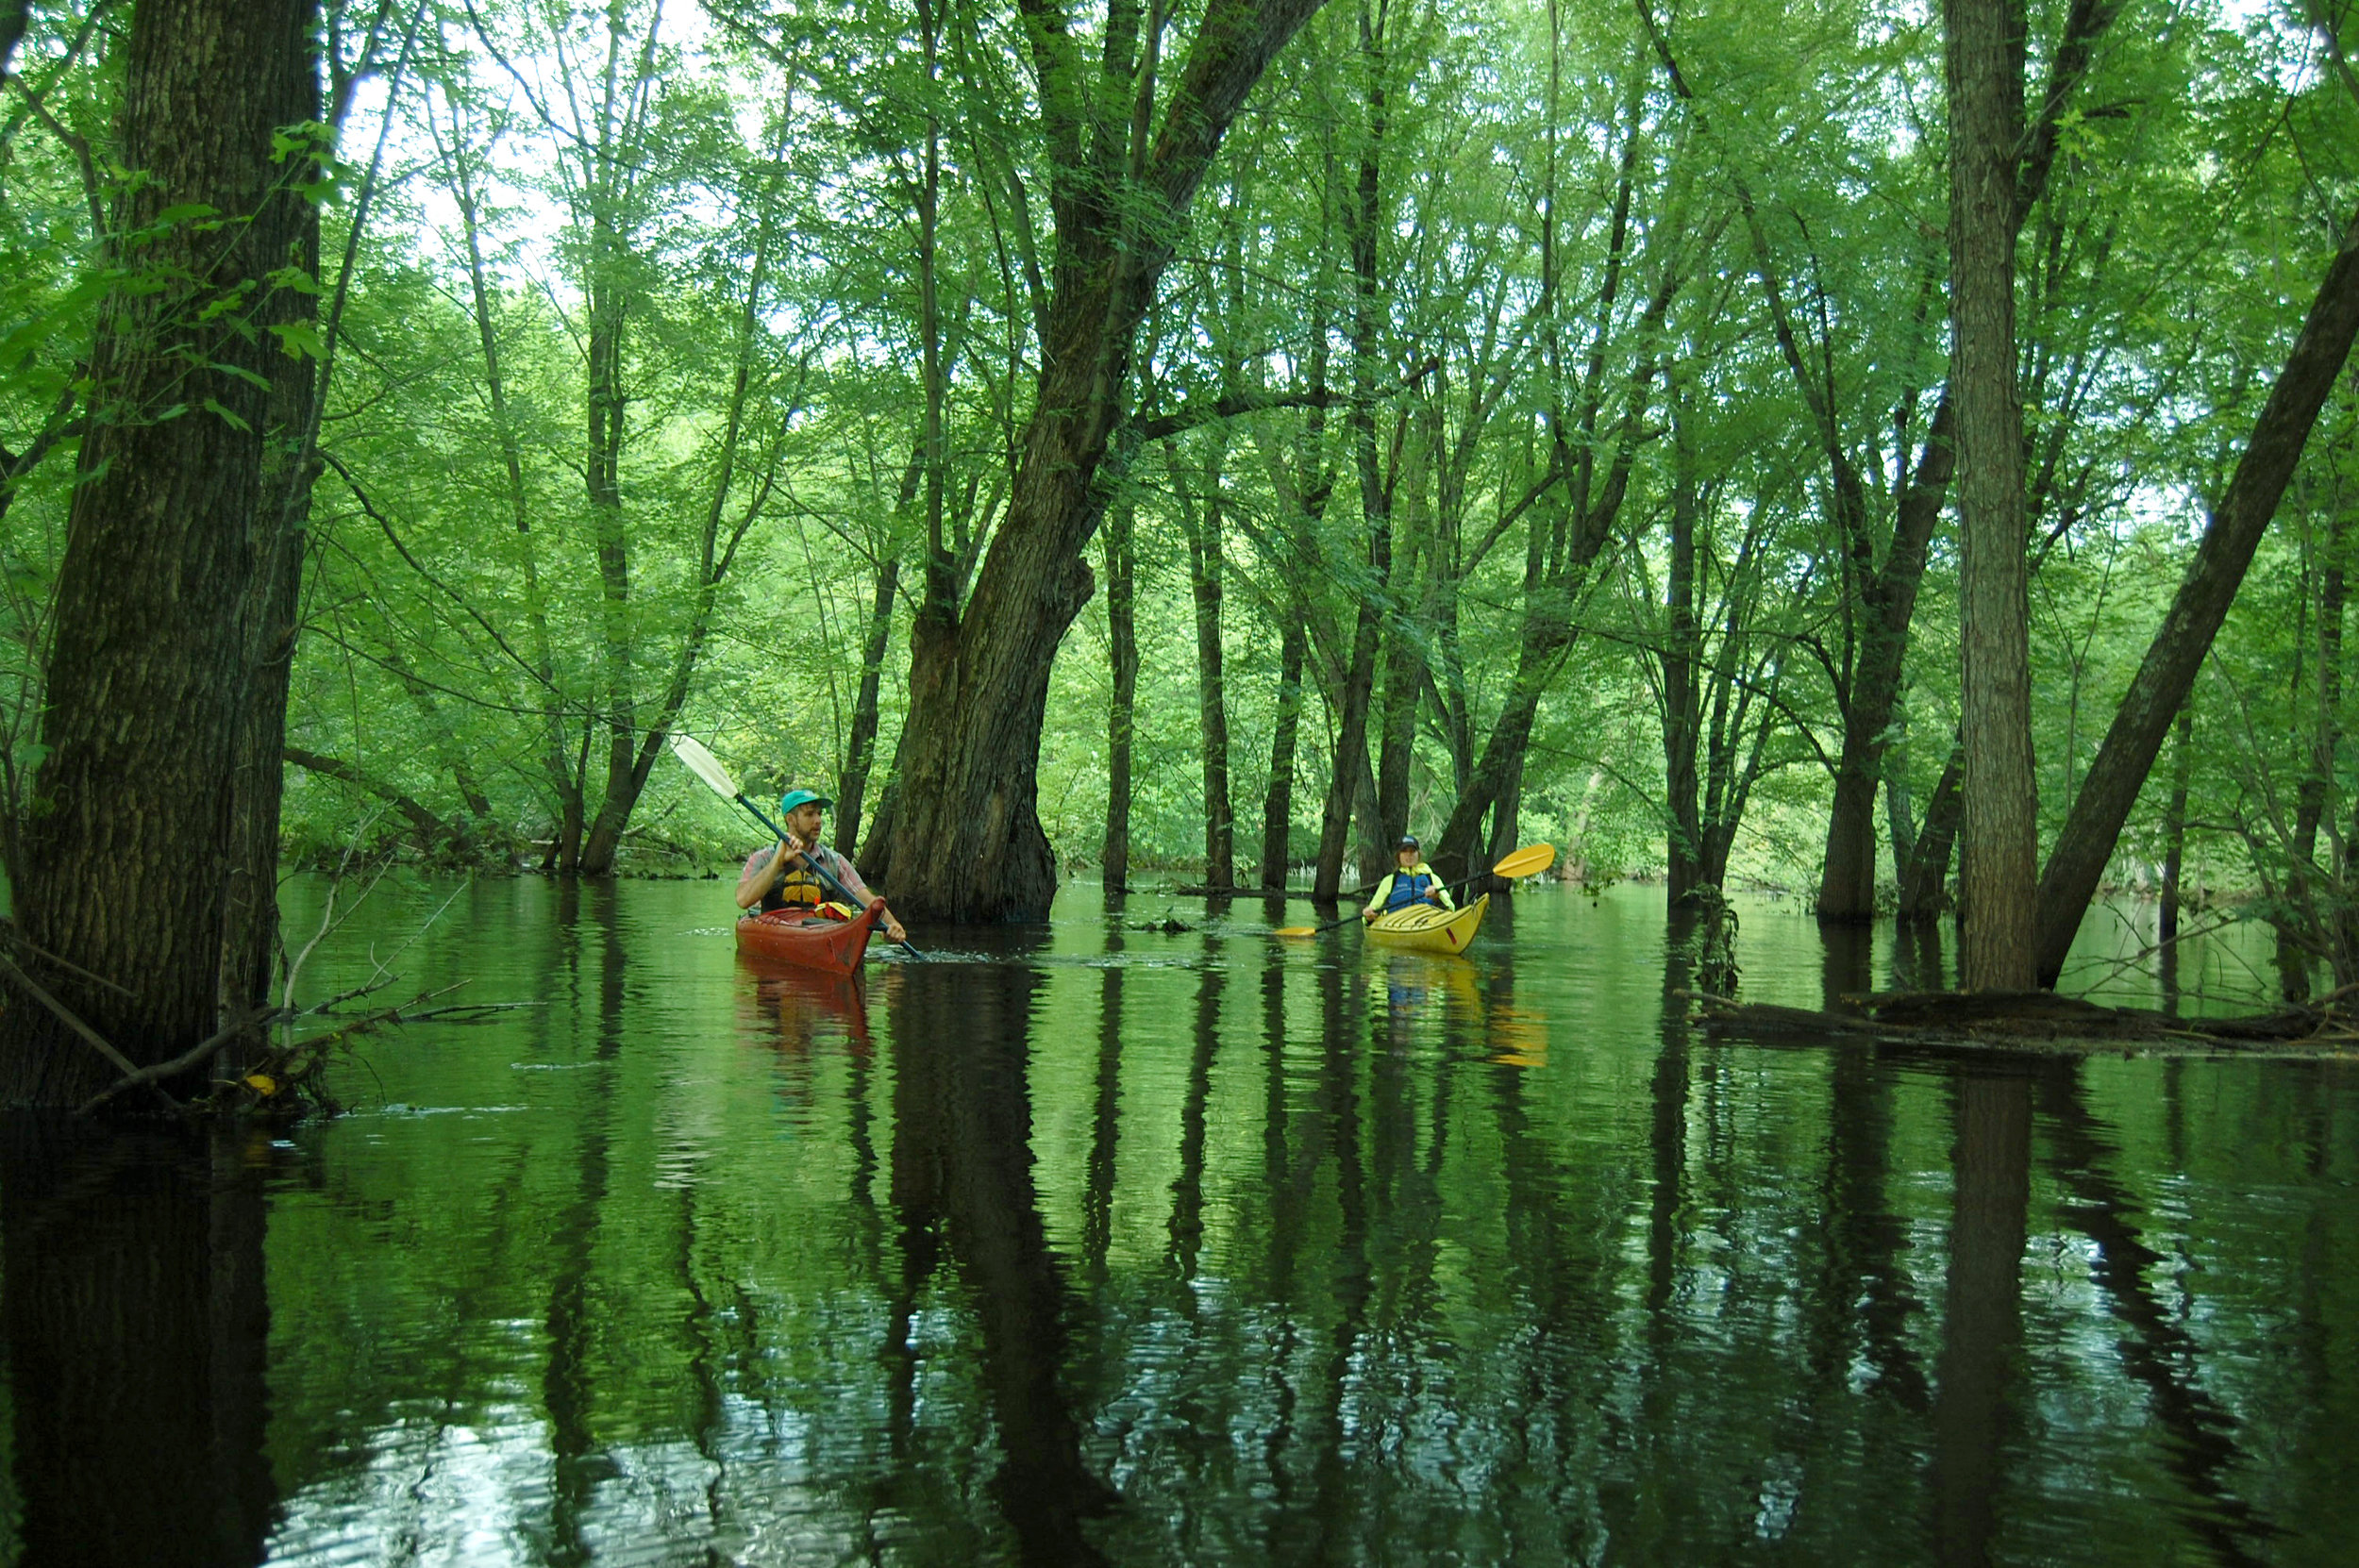 Flooded Forest Tour - 10am, 3:30pm$90/adult, $75/child